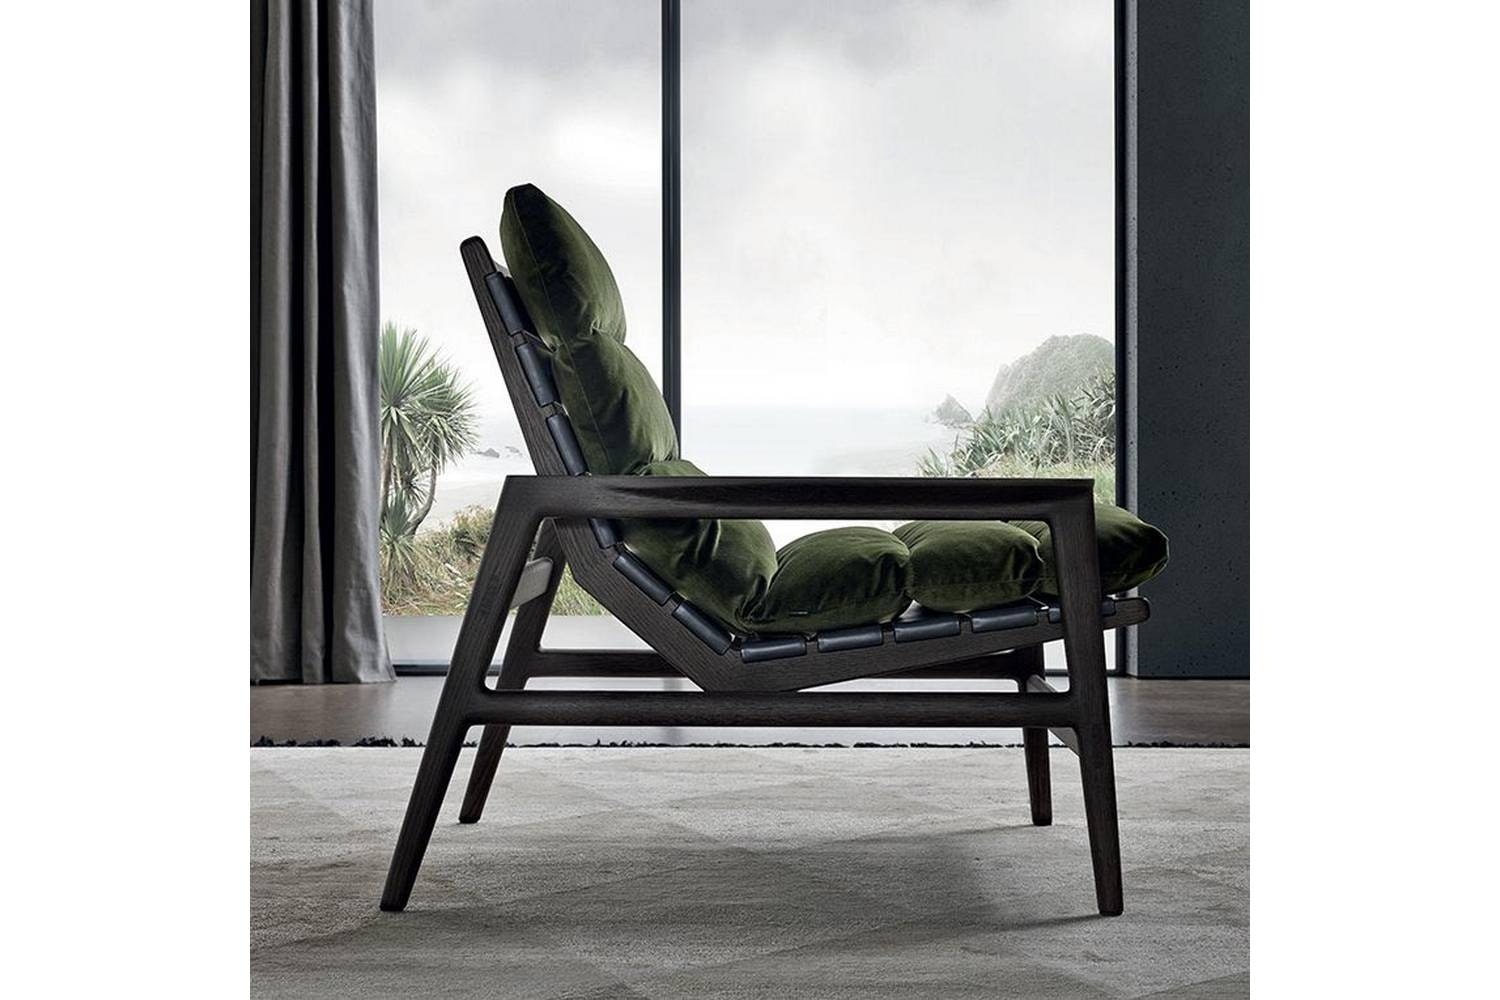 Ipanema Armchair by J. M. Massaud for Poliform